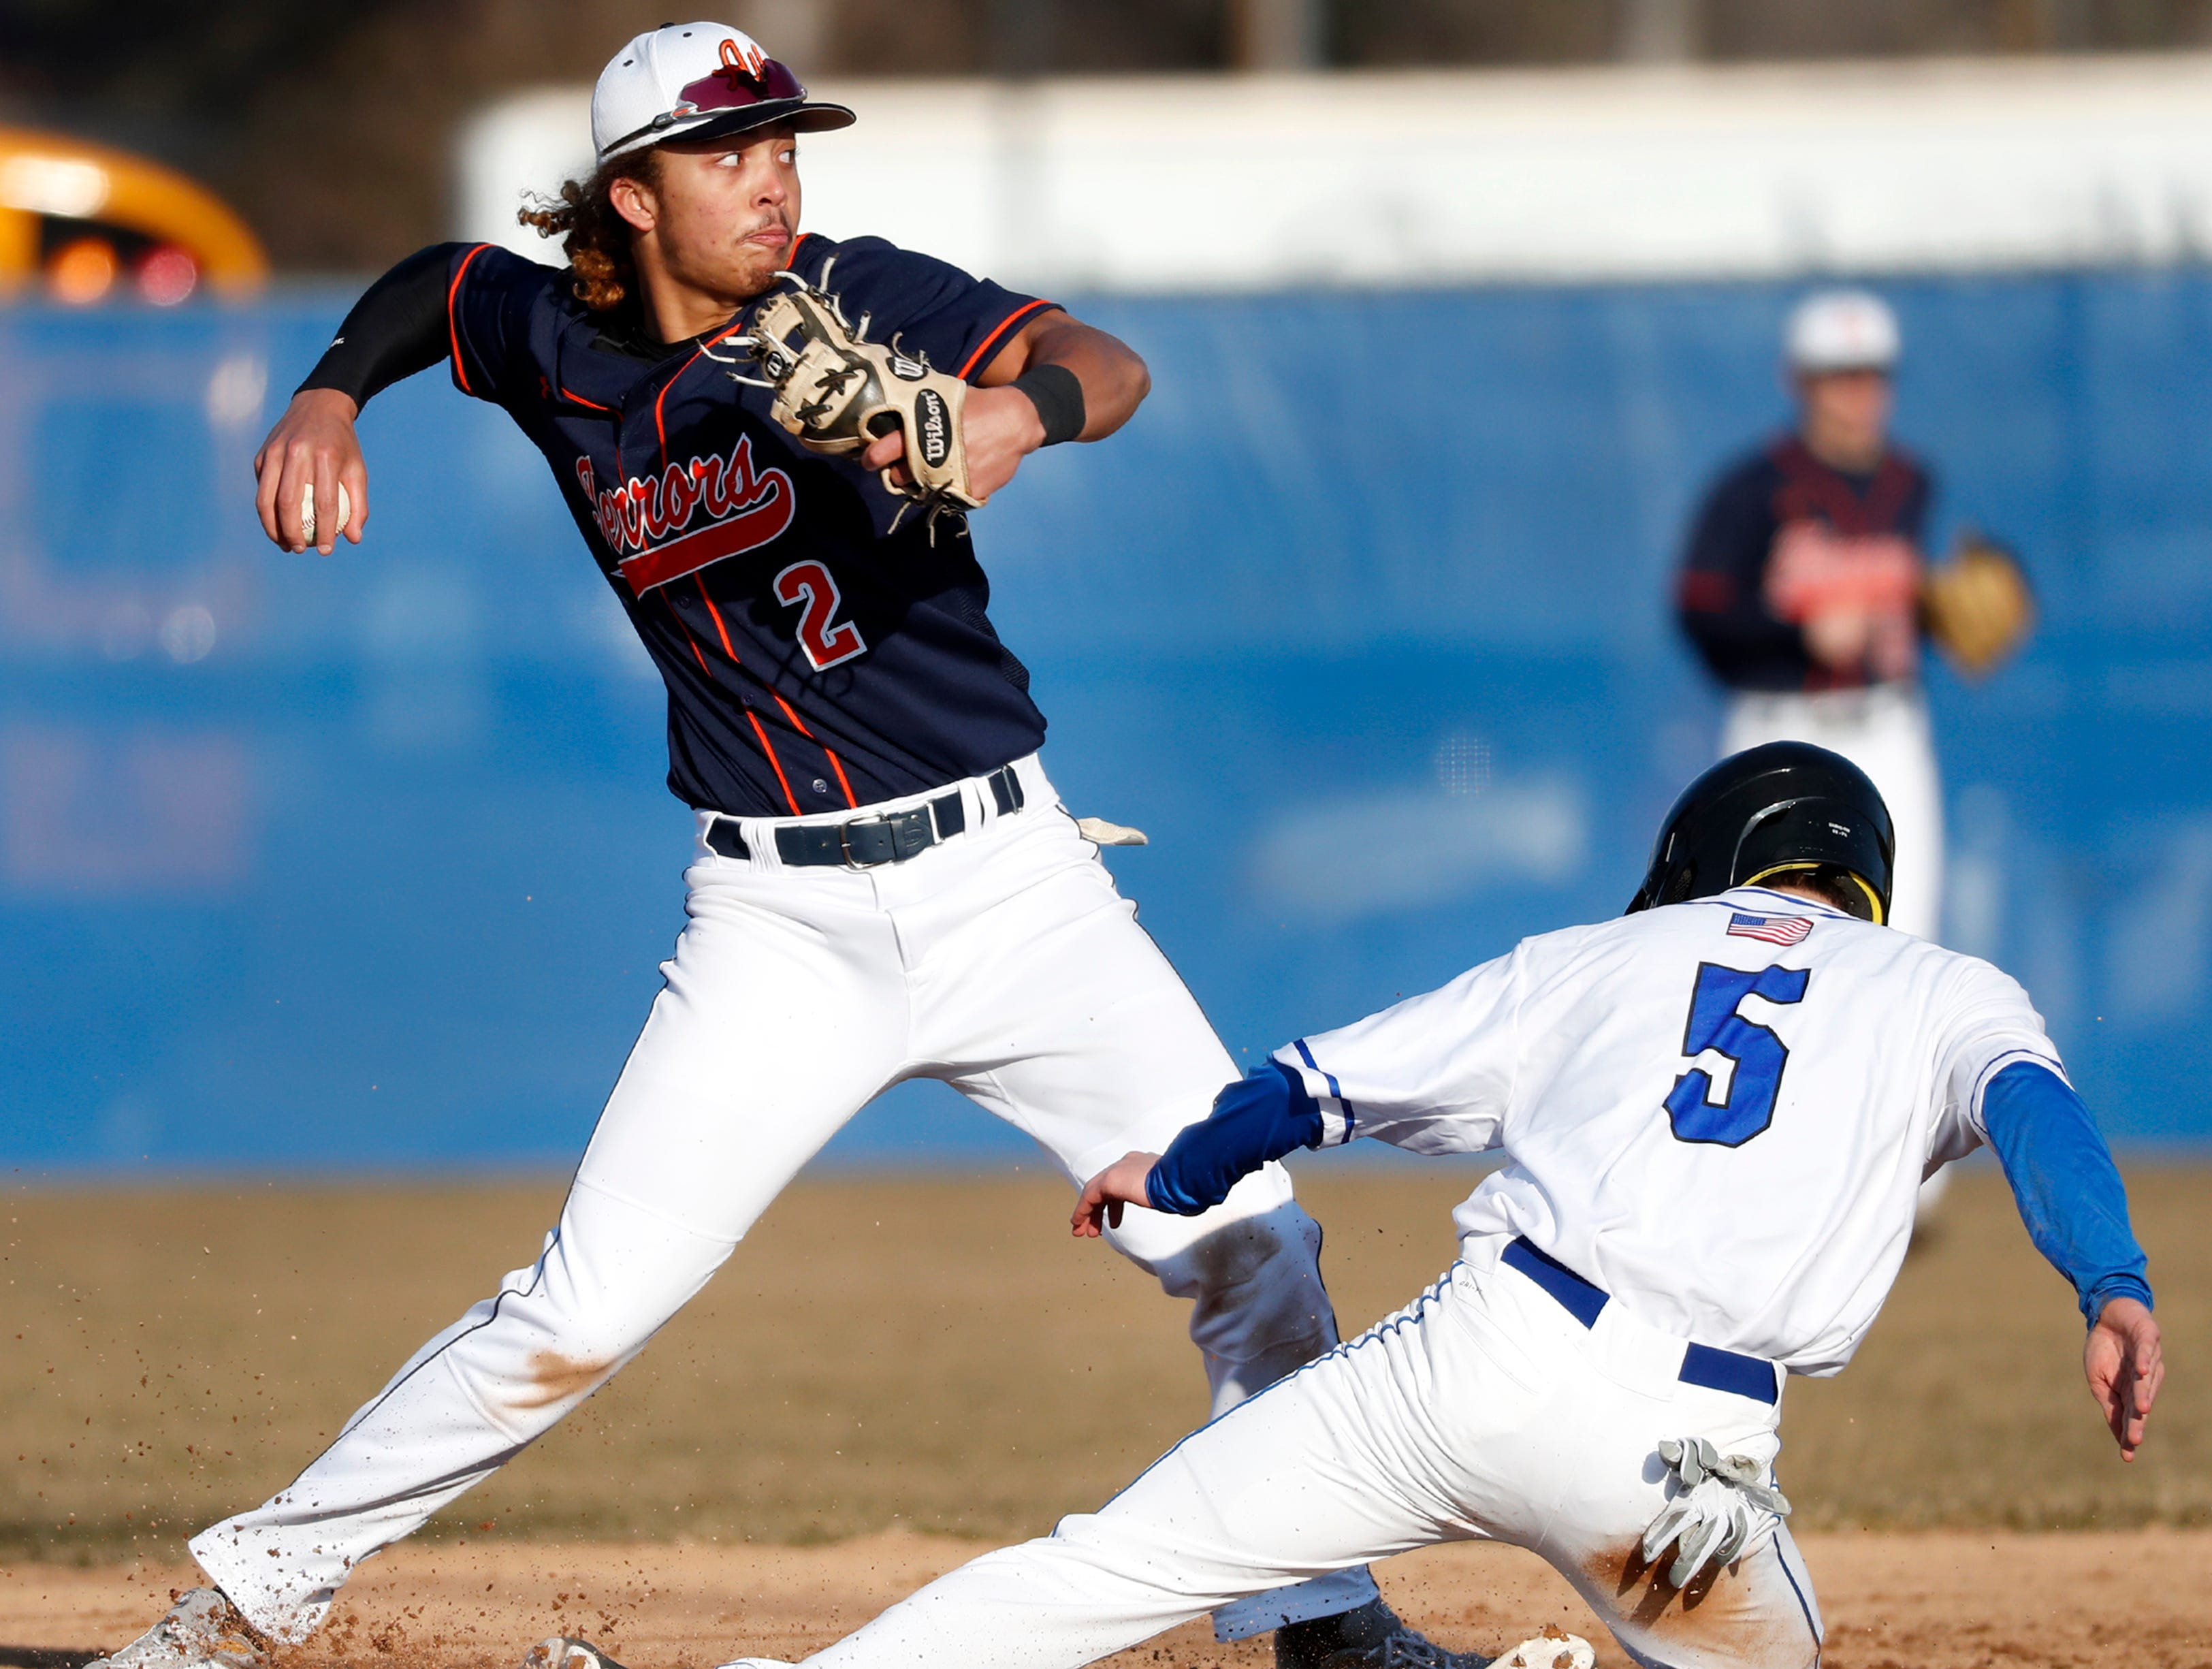 Appleton West High School's Bubba Thompson forces Oshkosh West High School's Alex Grey out at second Tuesday, April 2, 2019, at Nienhaus Field in Appleton, Wis. Appleton West defeated Oshkosh West 9-2.Danny Damiani/USA TODAY NETWORK-Wisconsin